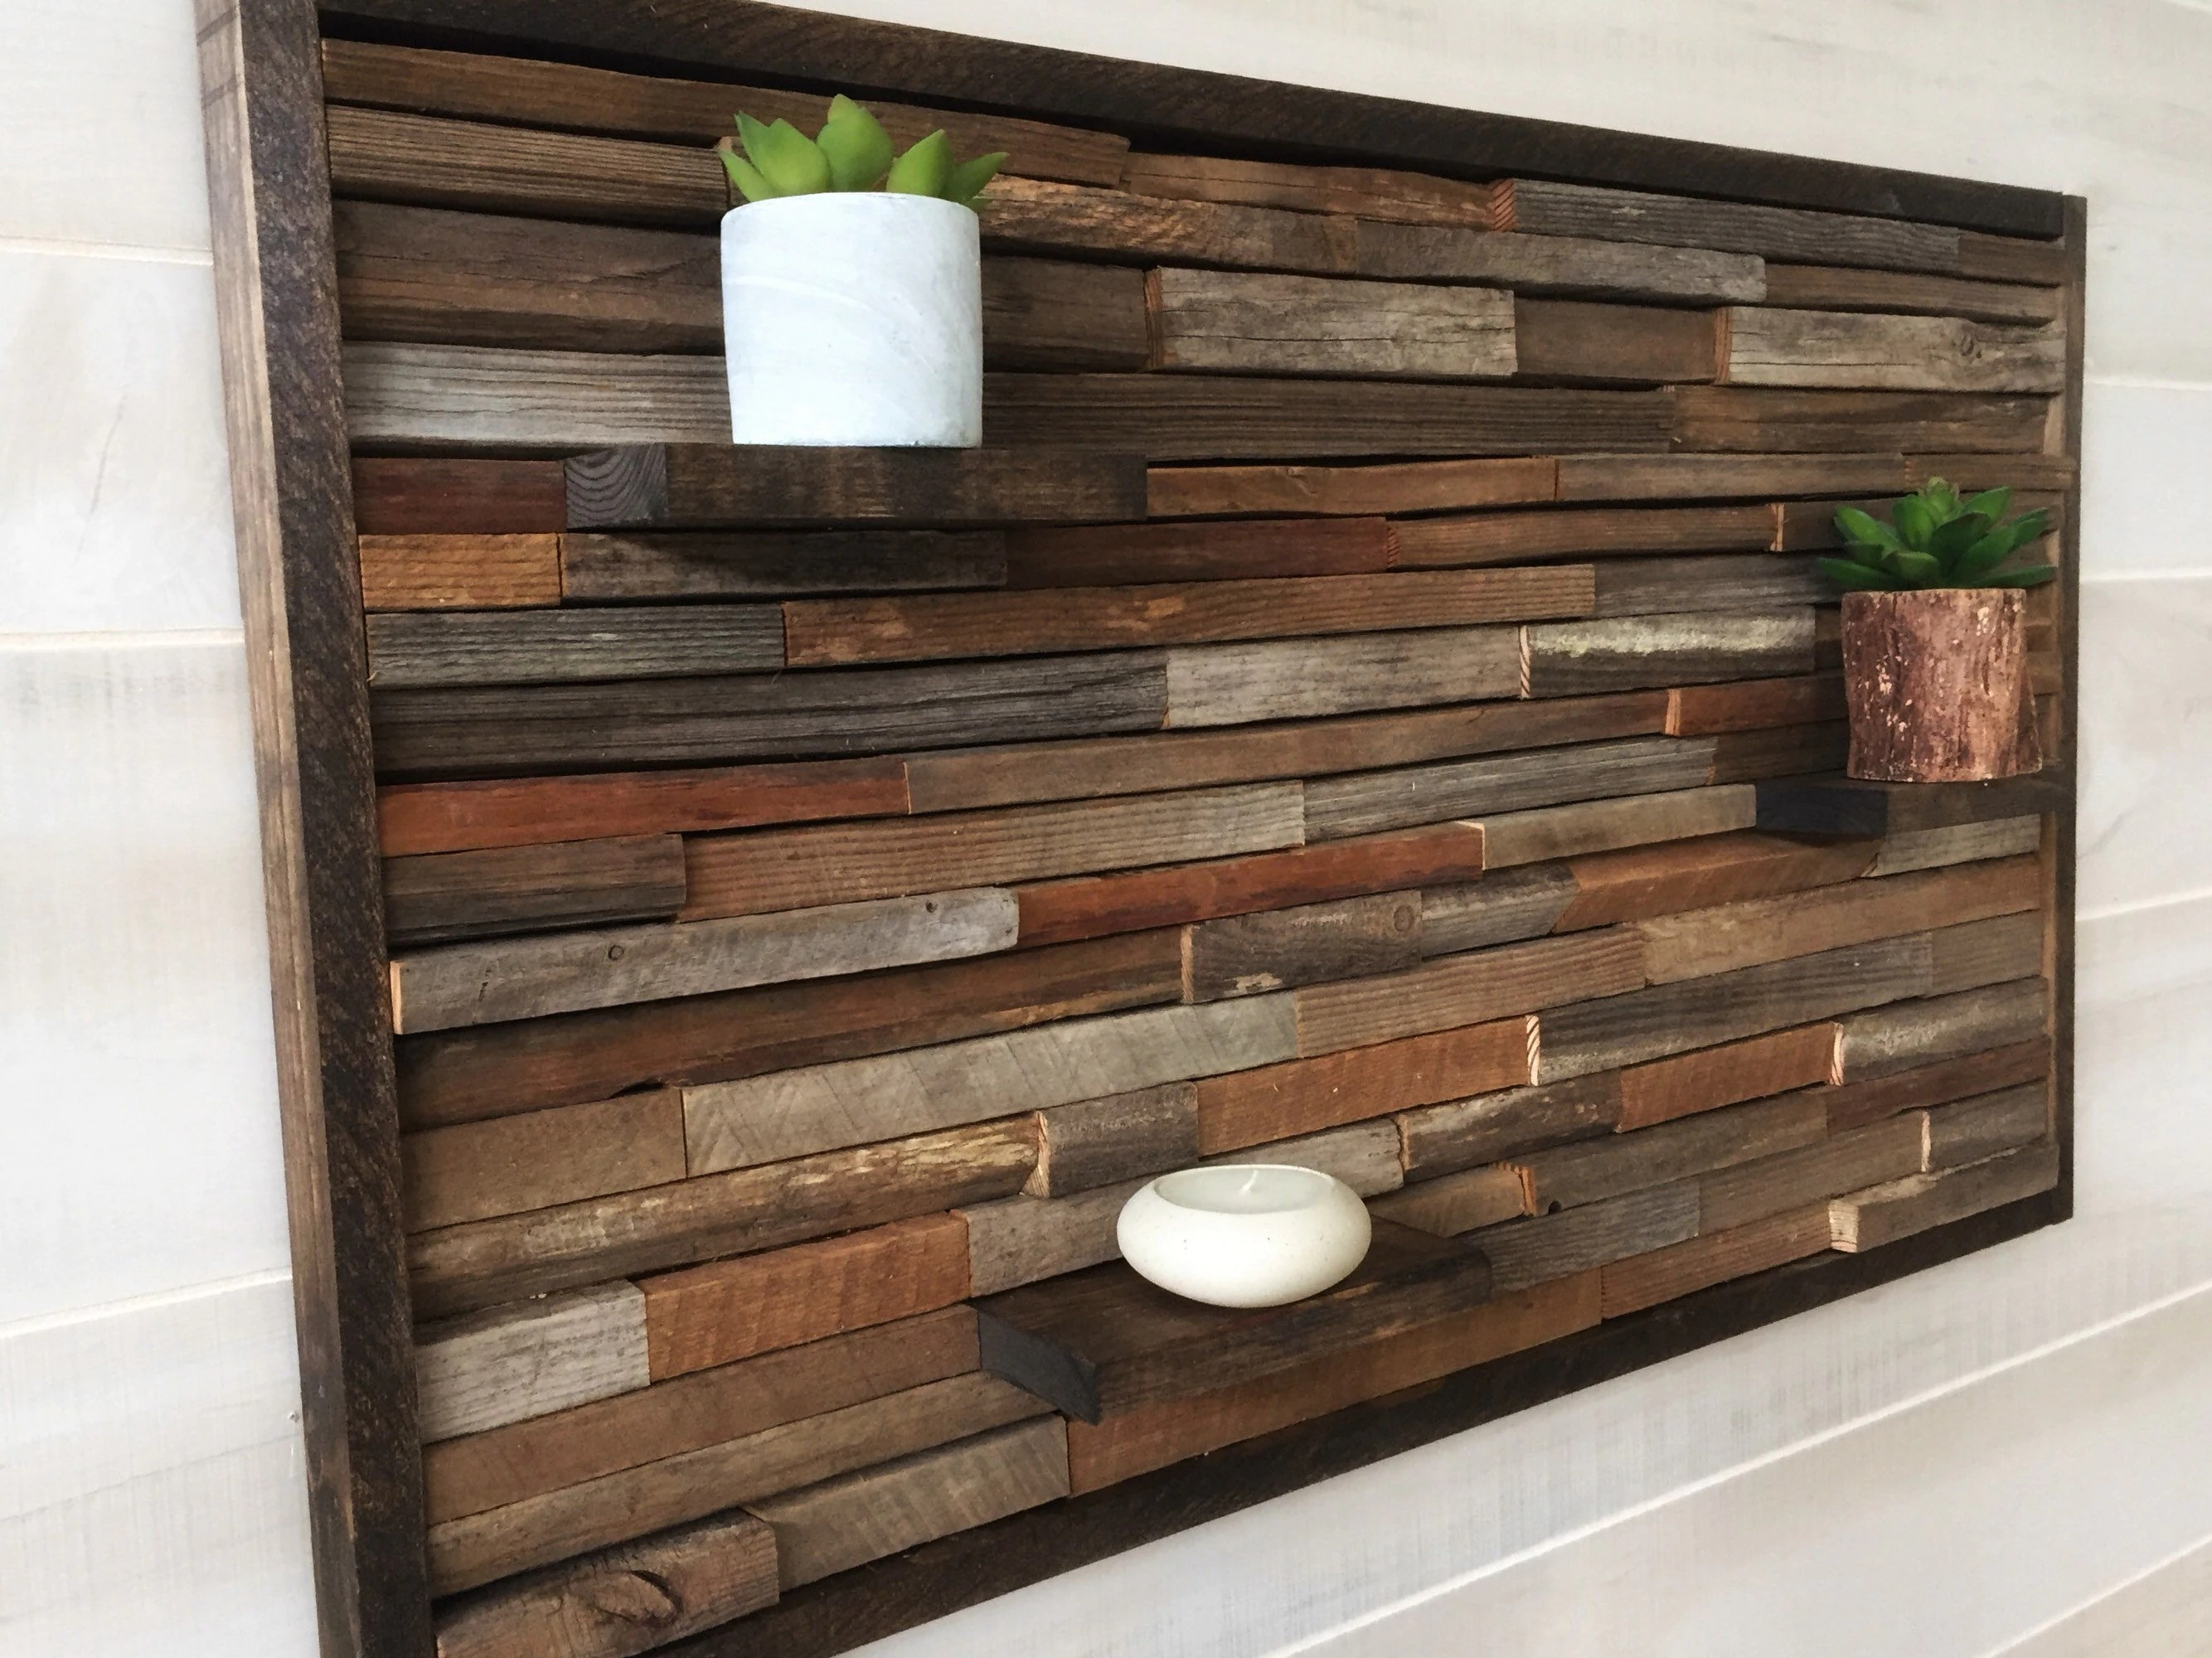 Fullsize Of Wood Wall Decor